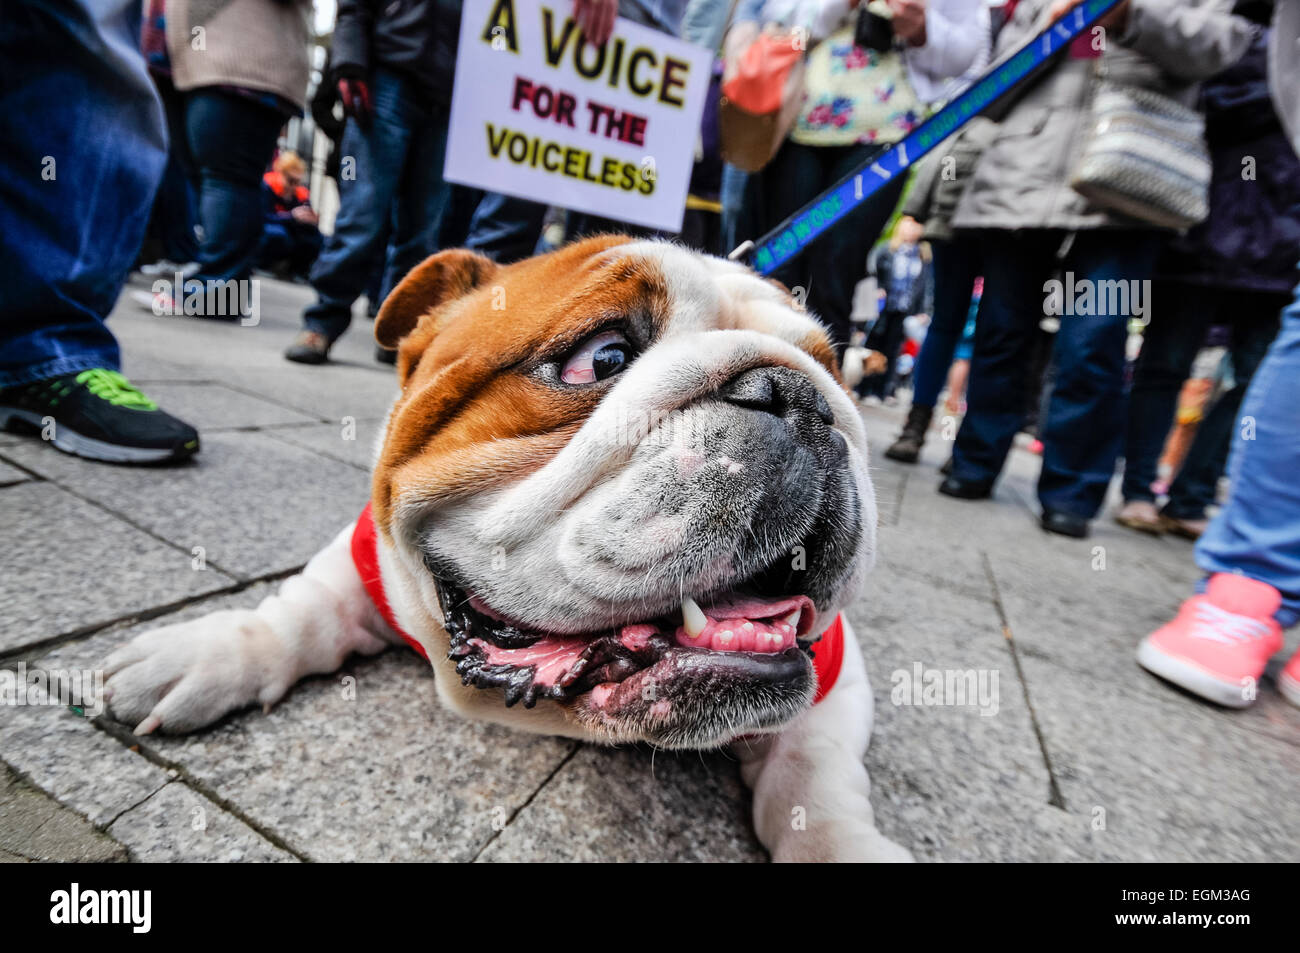 Belfast, Northern Ireland. 27 Apr 2014 - Bulldog lies on the footpath while hundreds of people gather for a rally - Stock Image